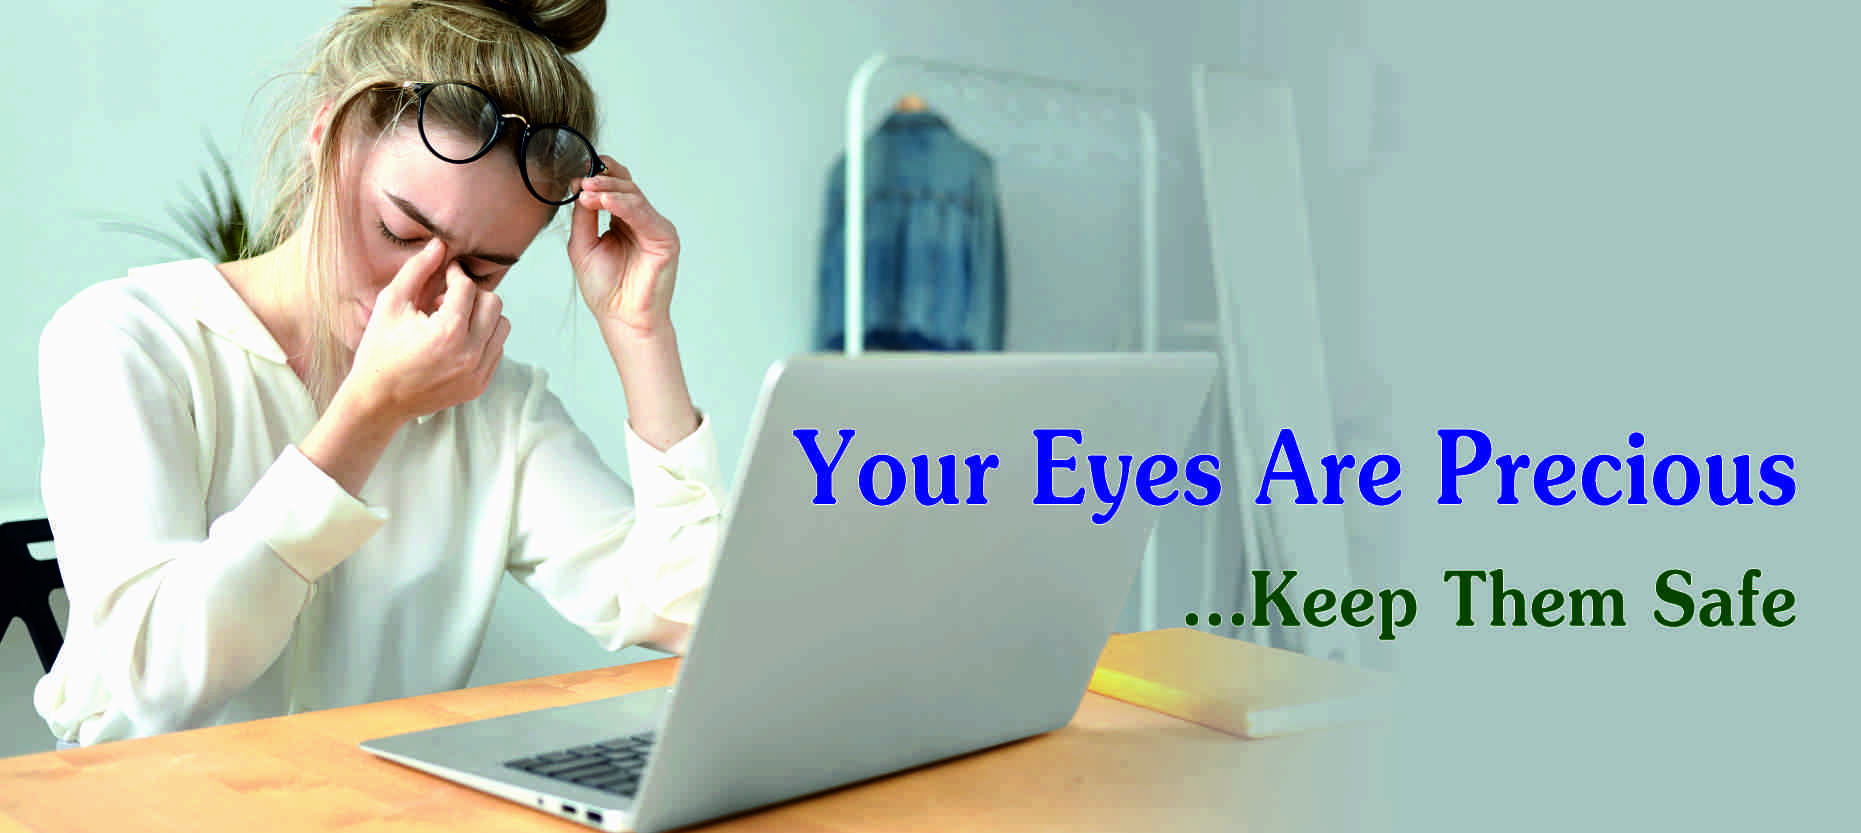 Computer Vision Syndrome: How To Protect Your Eyes from It